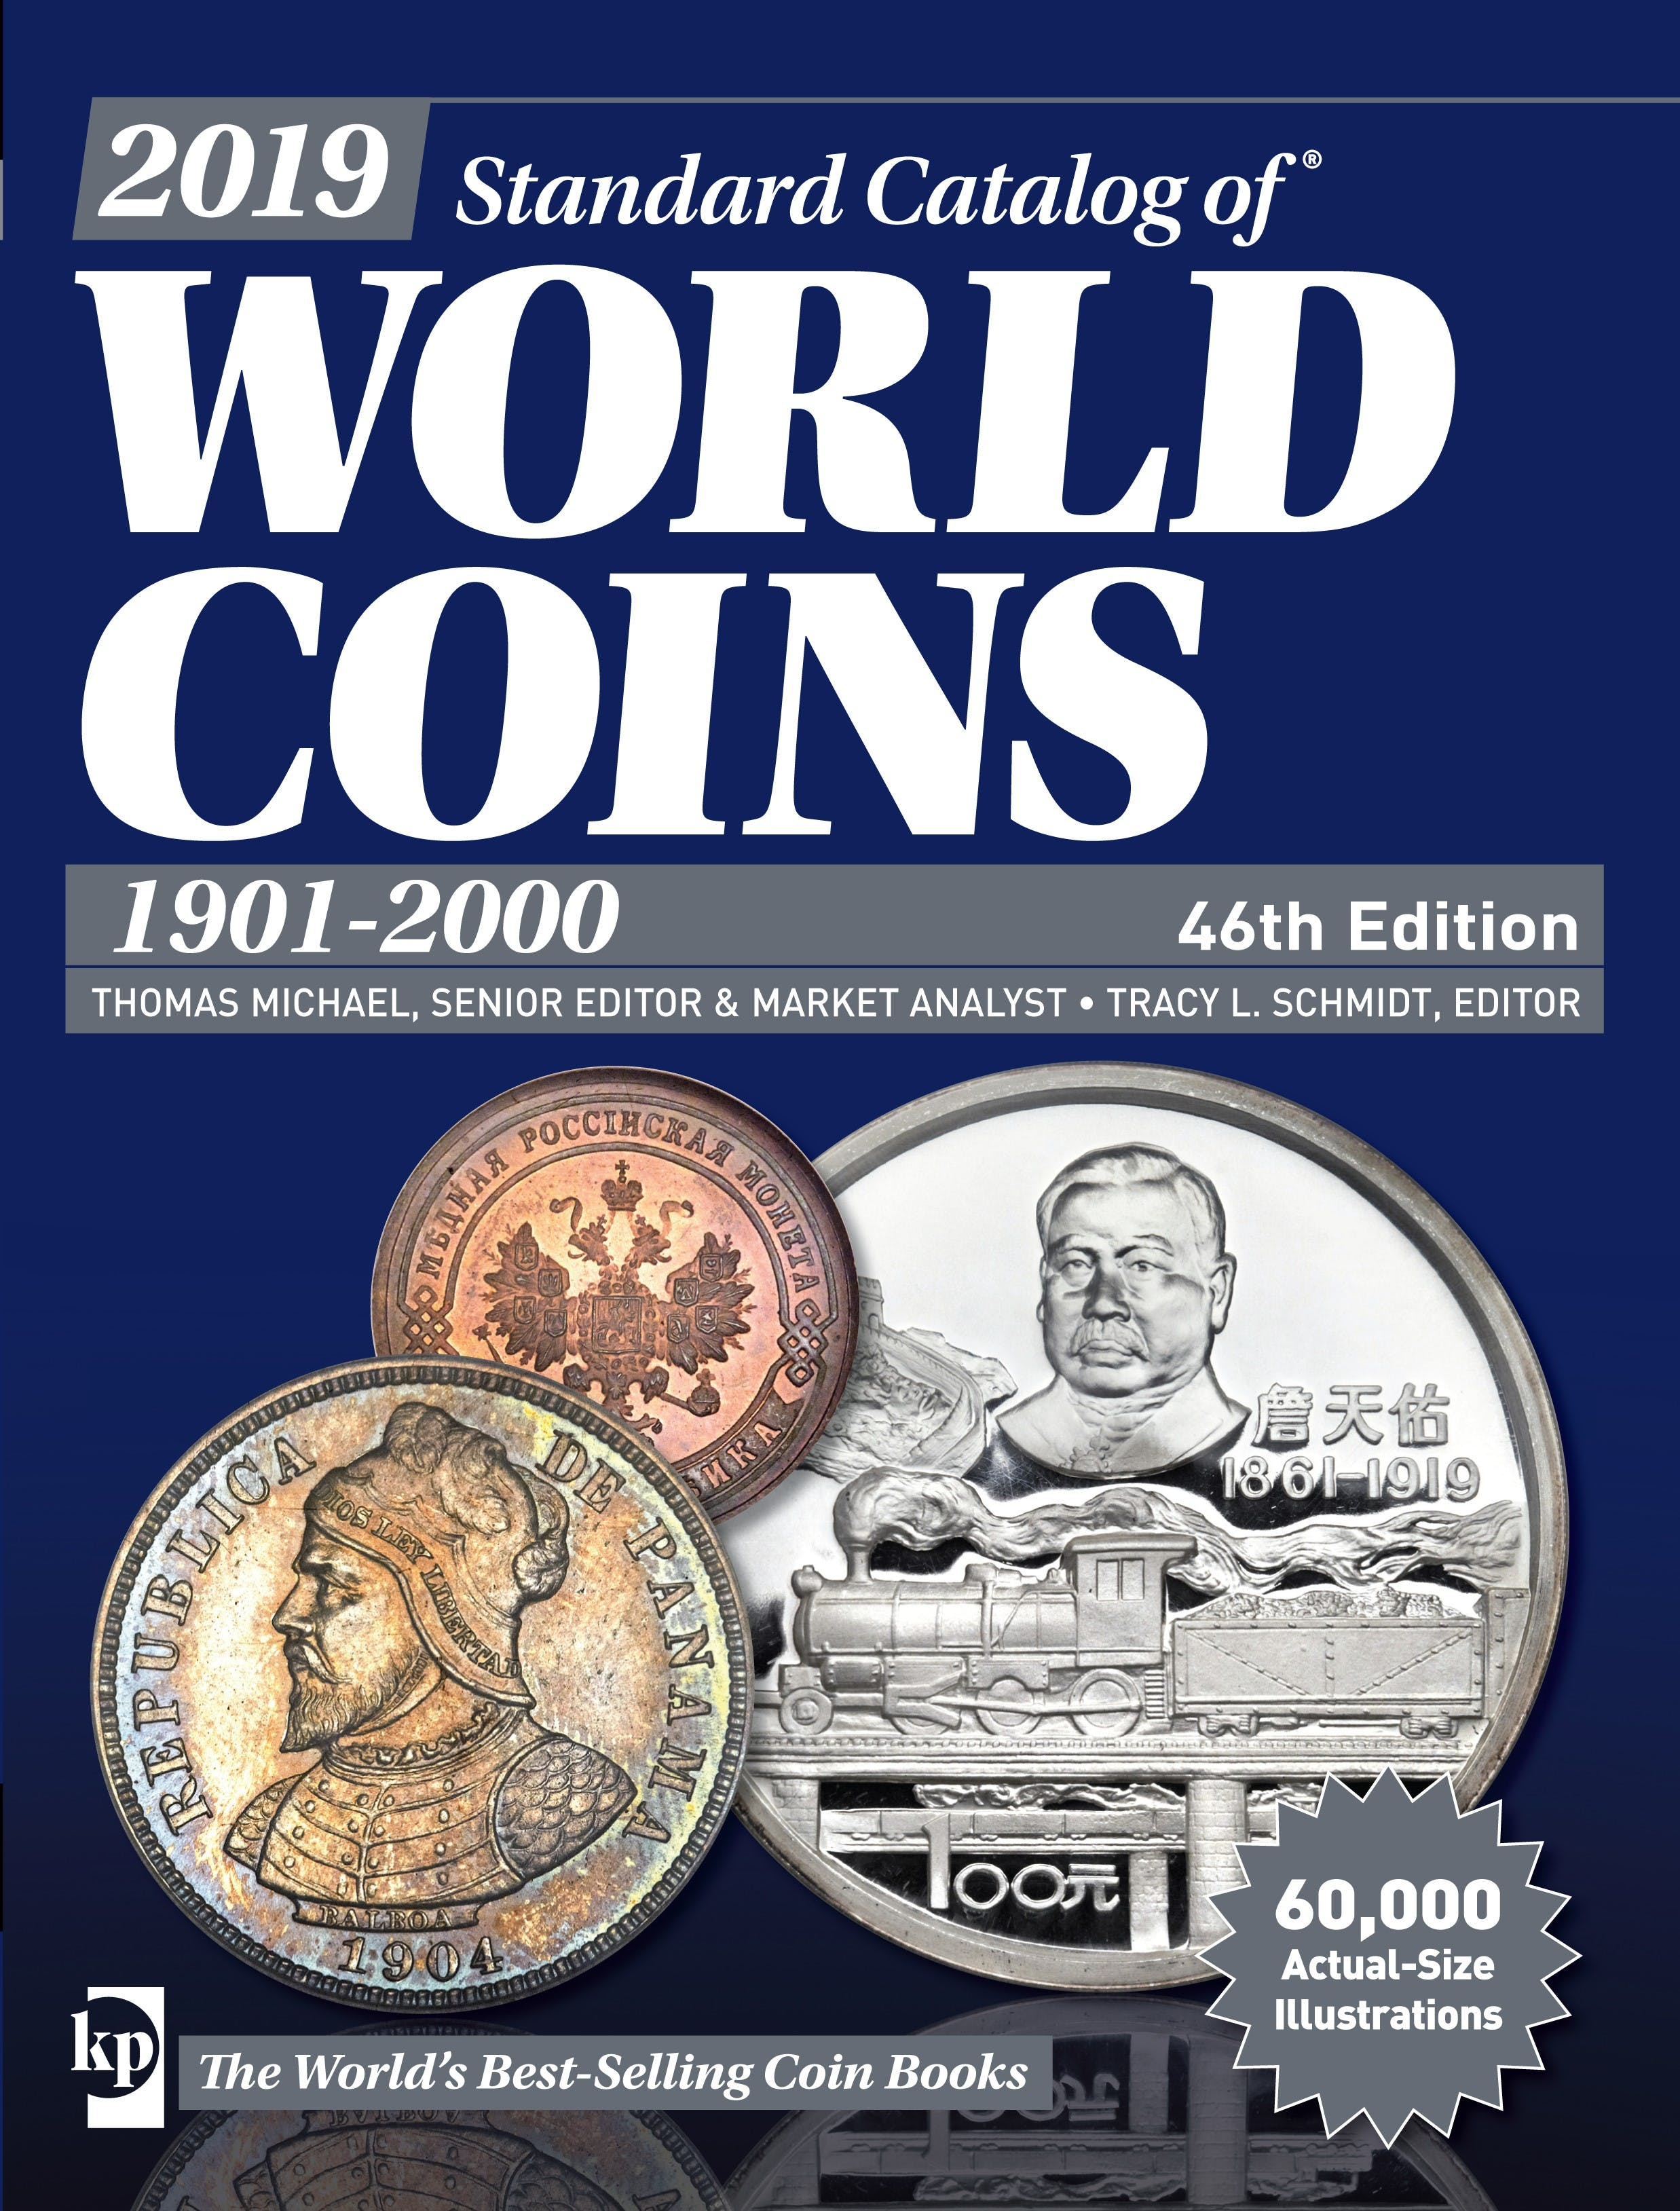 Krause Standard Catalog of World Coins 1901-2000 46th Edition - Token Publishing Shop